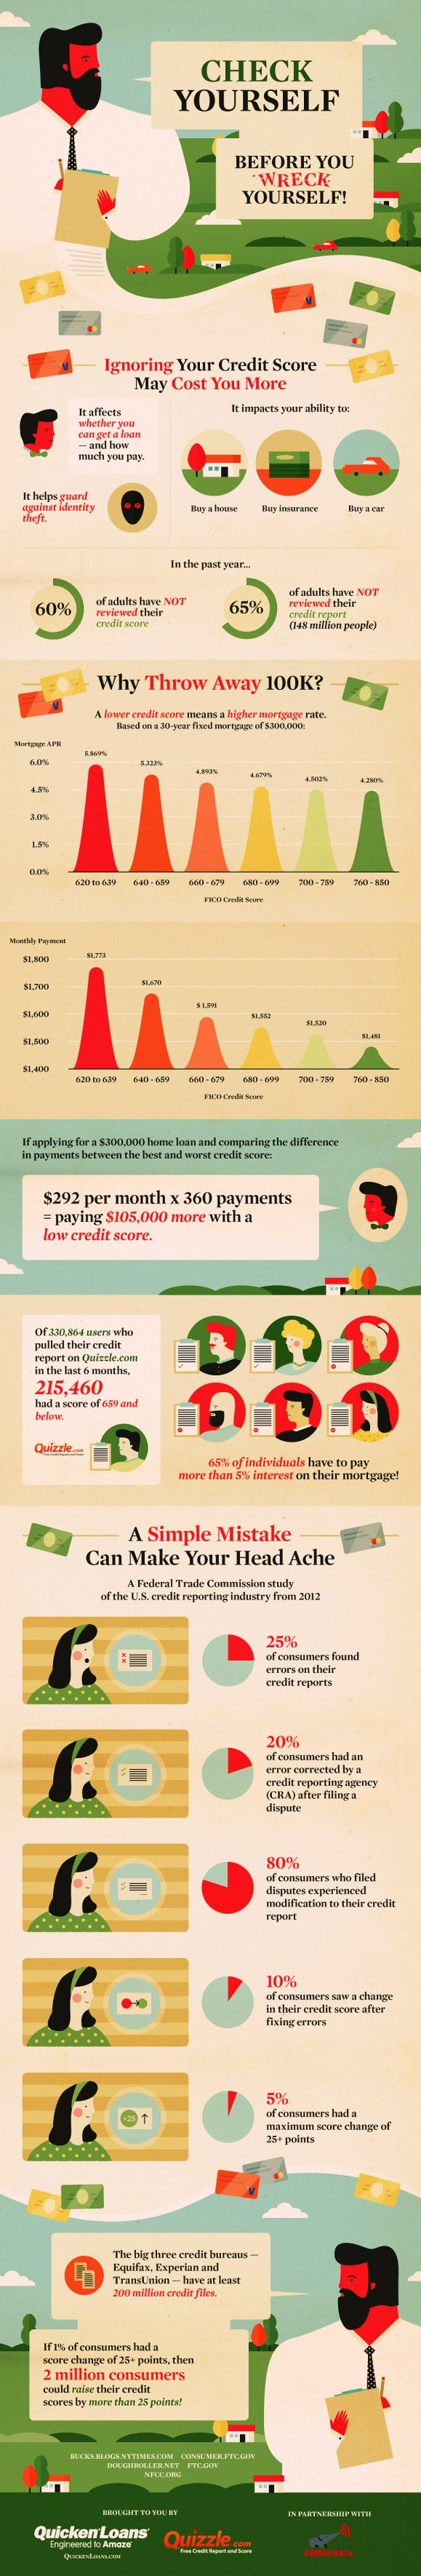 According to Quizzle.com, 65% of adults have never reviewed their credit report. This can be very dangerous of course and can cost you a lot of money if it has errors that go uncorrected. Here's a great Infographic from the folks at Quizzle.com.